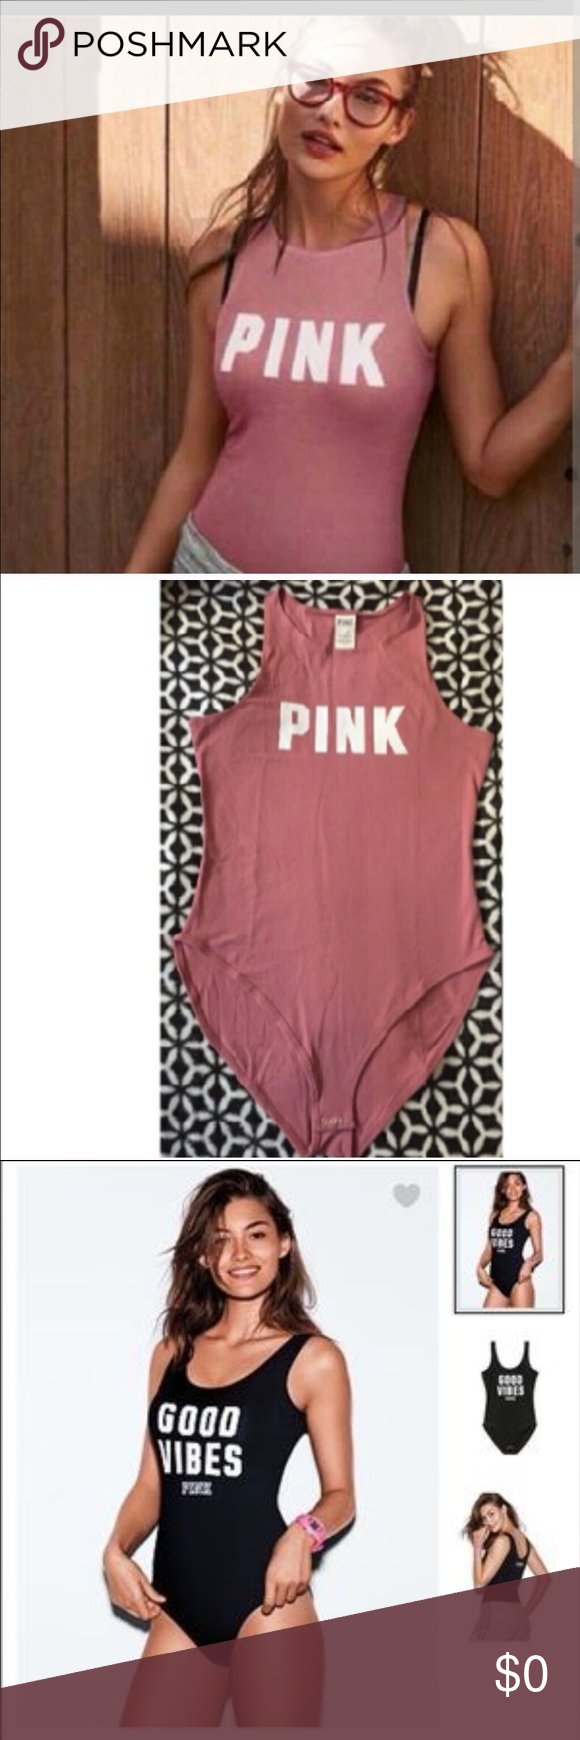 Iso Vs Bodysuit Stole These Pics From Off Line Lol Looking For Vs